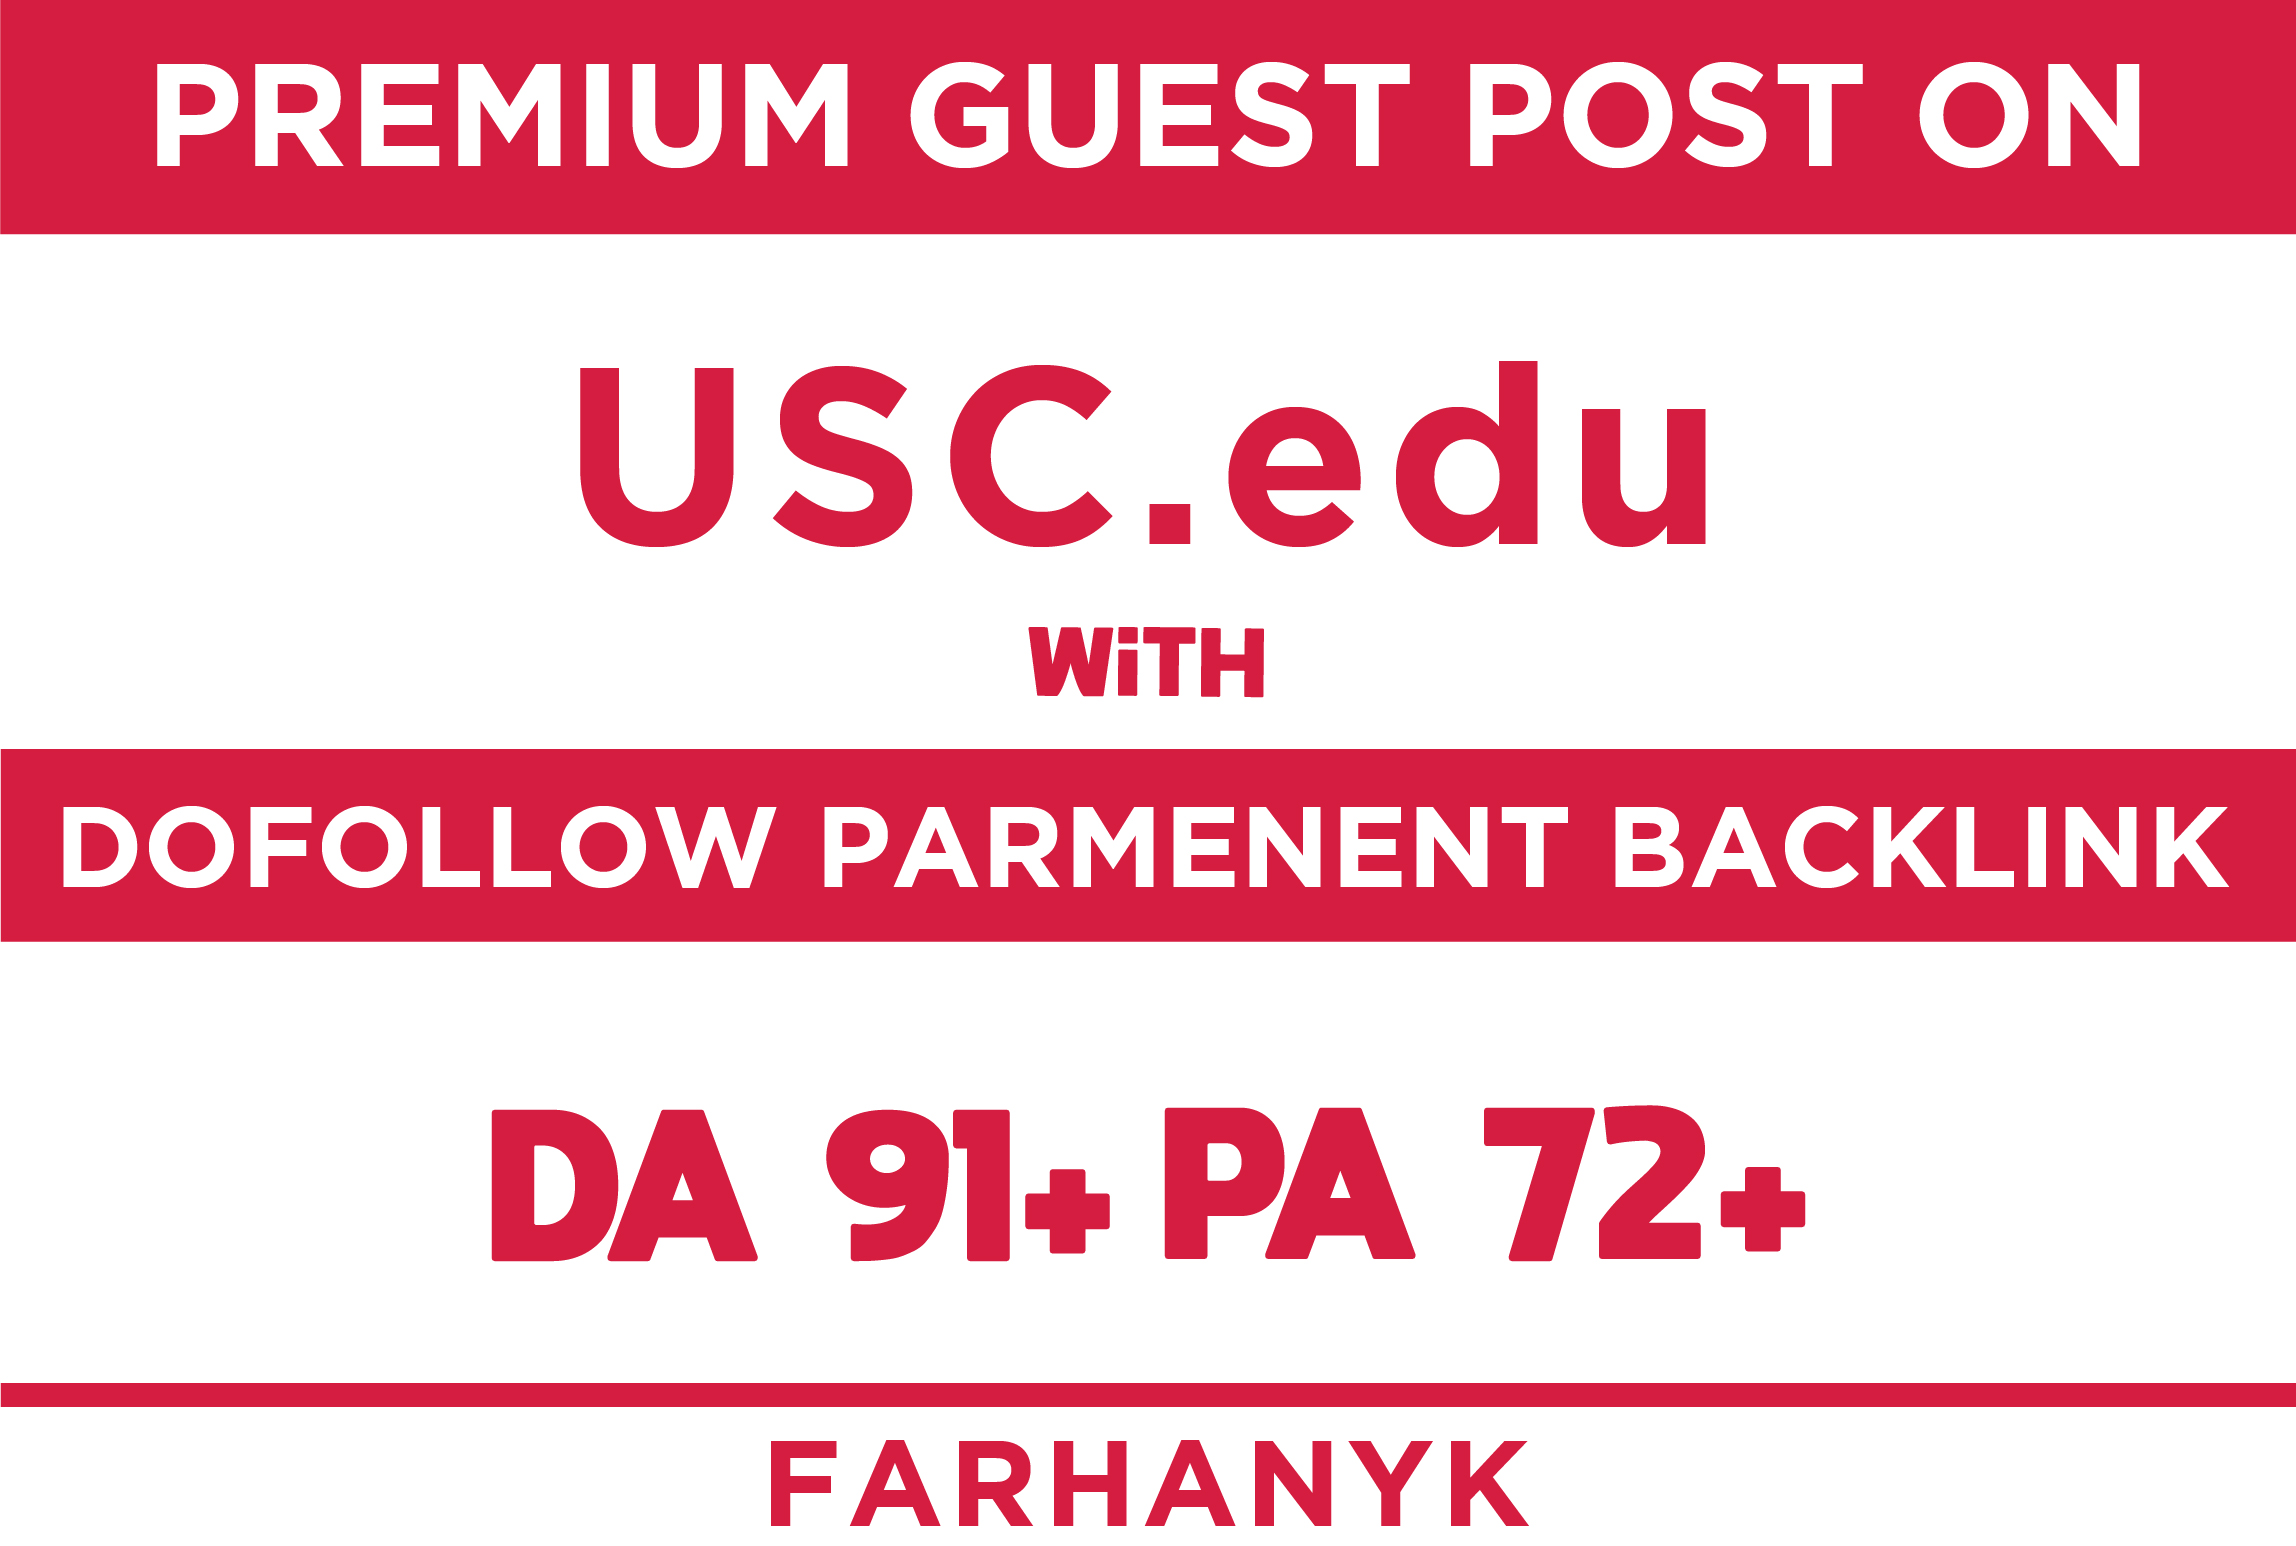 make guest post on university of southern california da91 pa72 blog